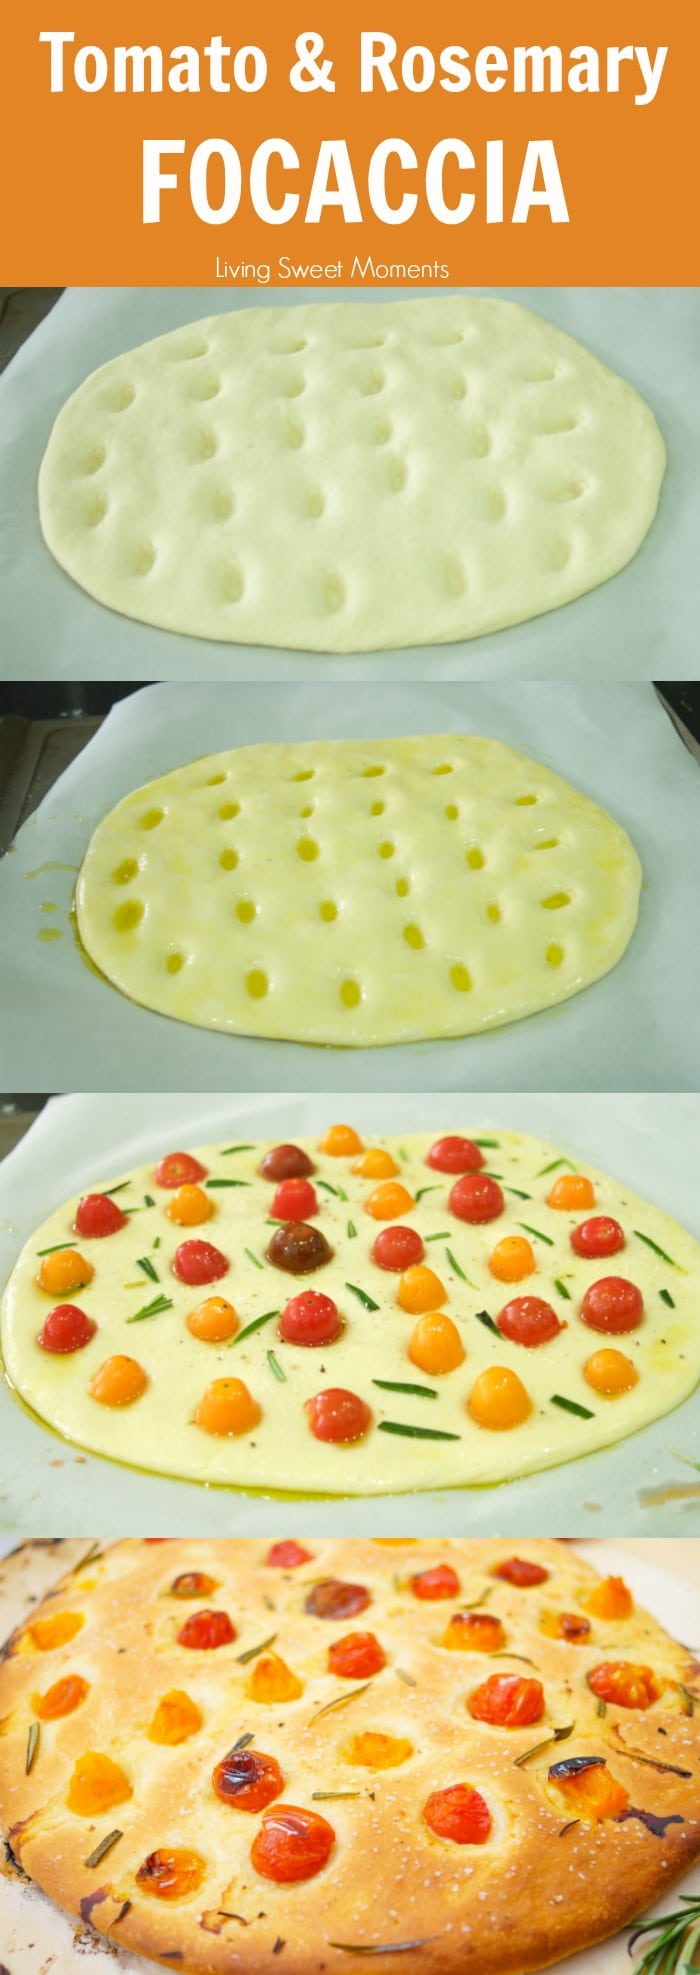 tomatoes and arugula recipes focaccia pizza with zucchini tomatoes and ...